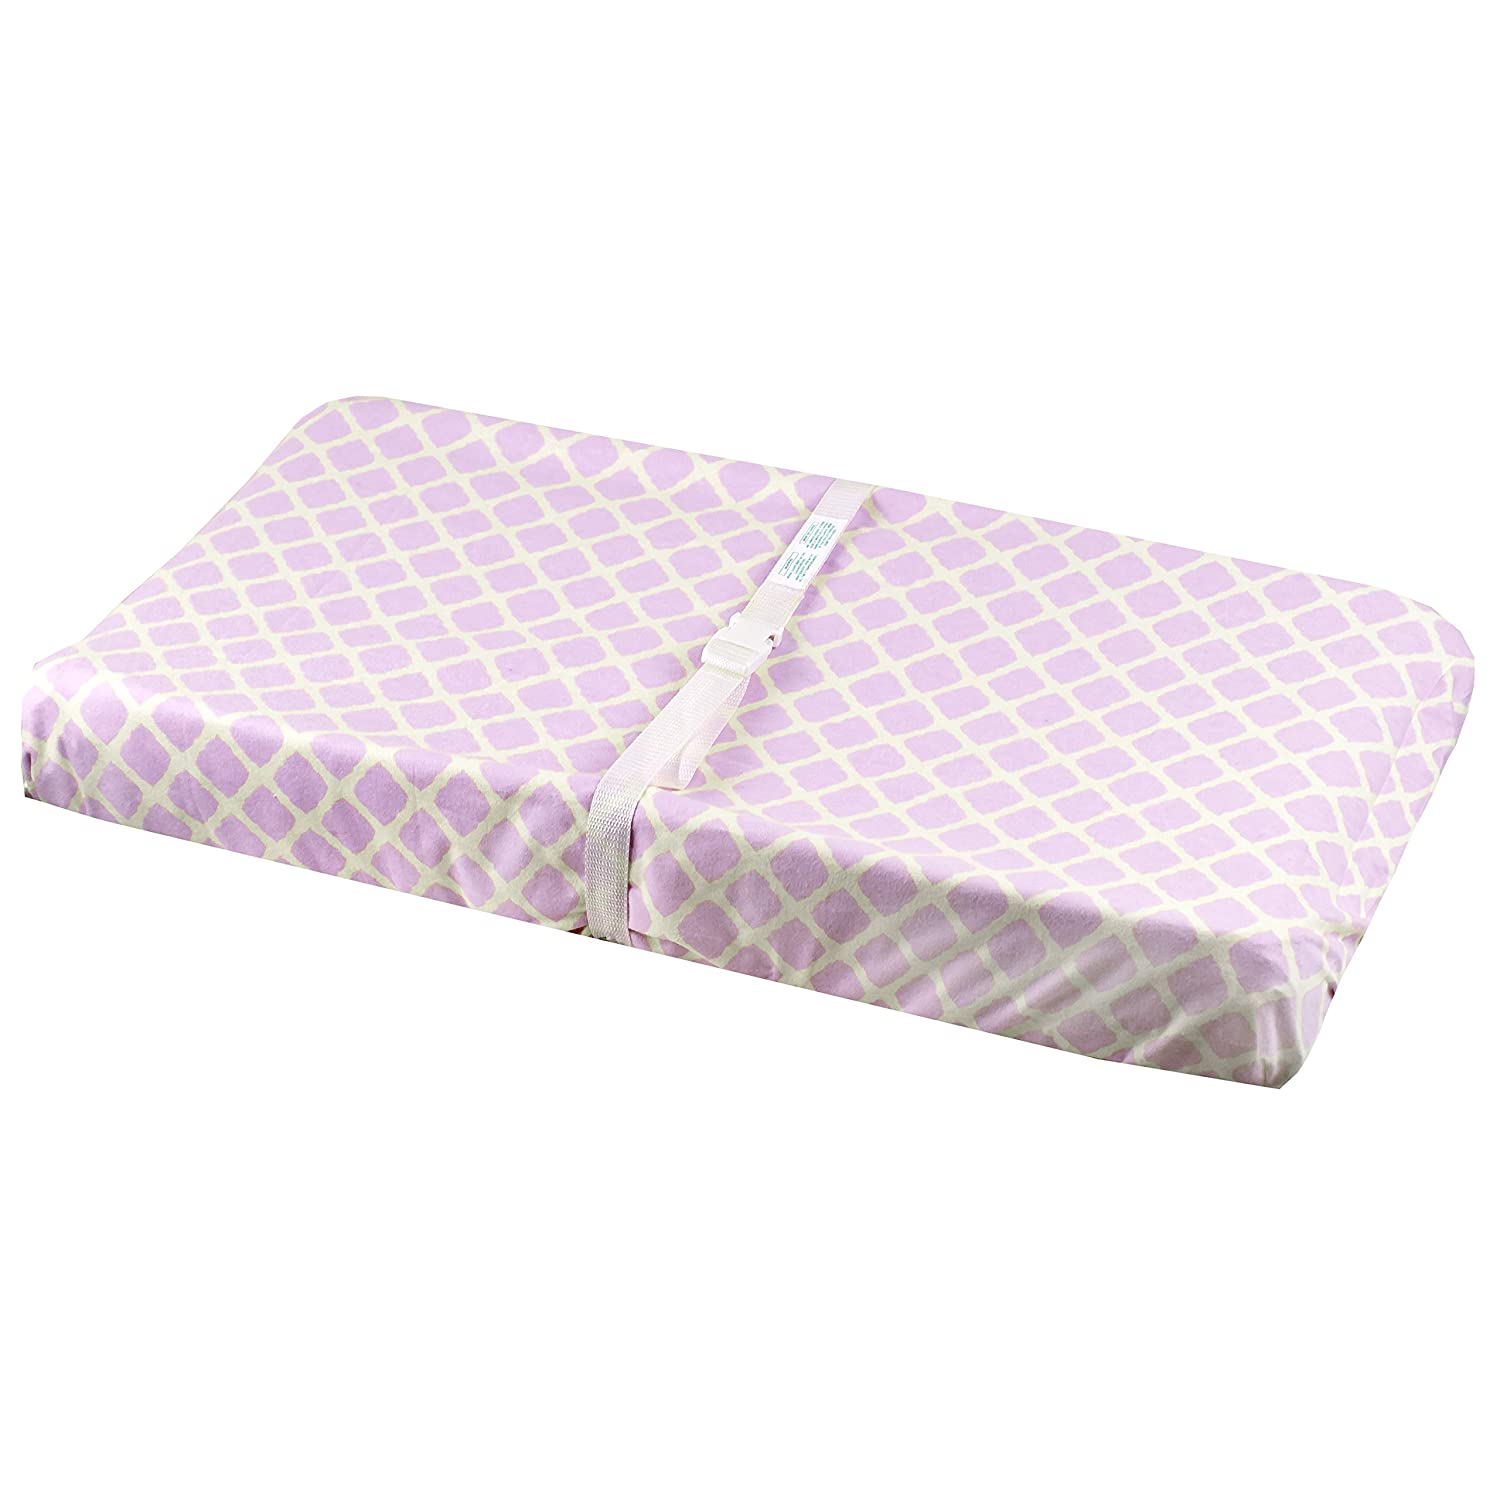 Ben /& Noa Flannel Fitted Change Pad Sheet with Slits for Safety Straps Natural Solid